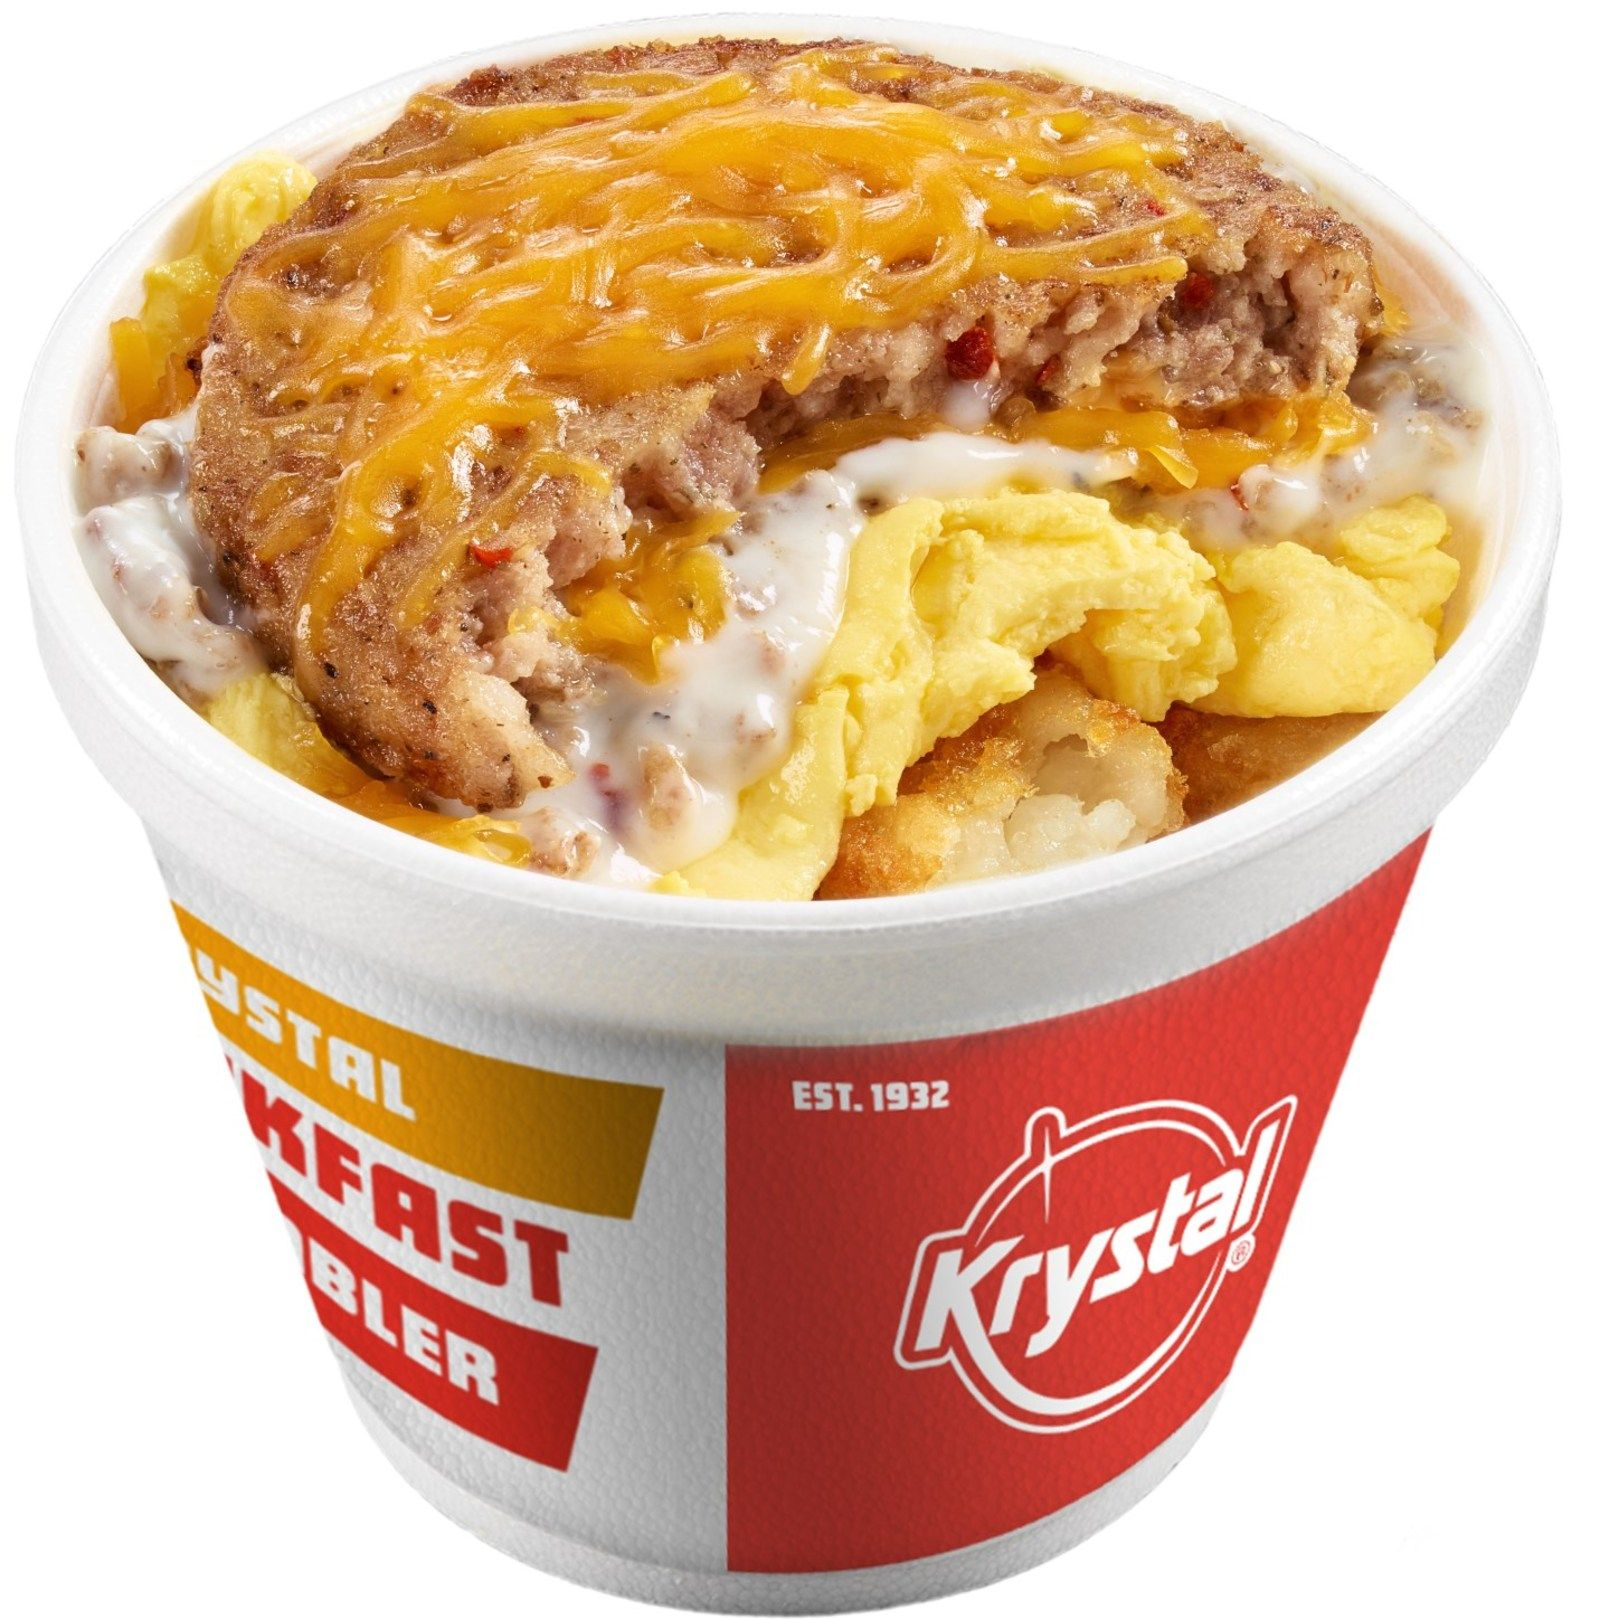 Breakfast at Krystal Just Got Loaded and Even More Exciting